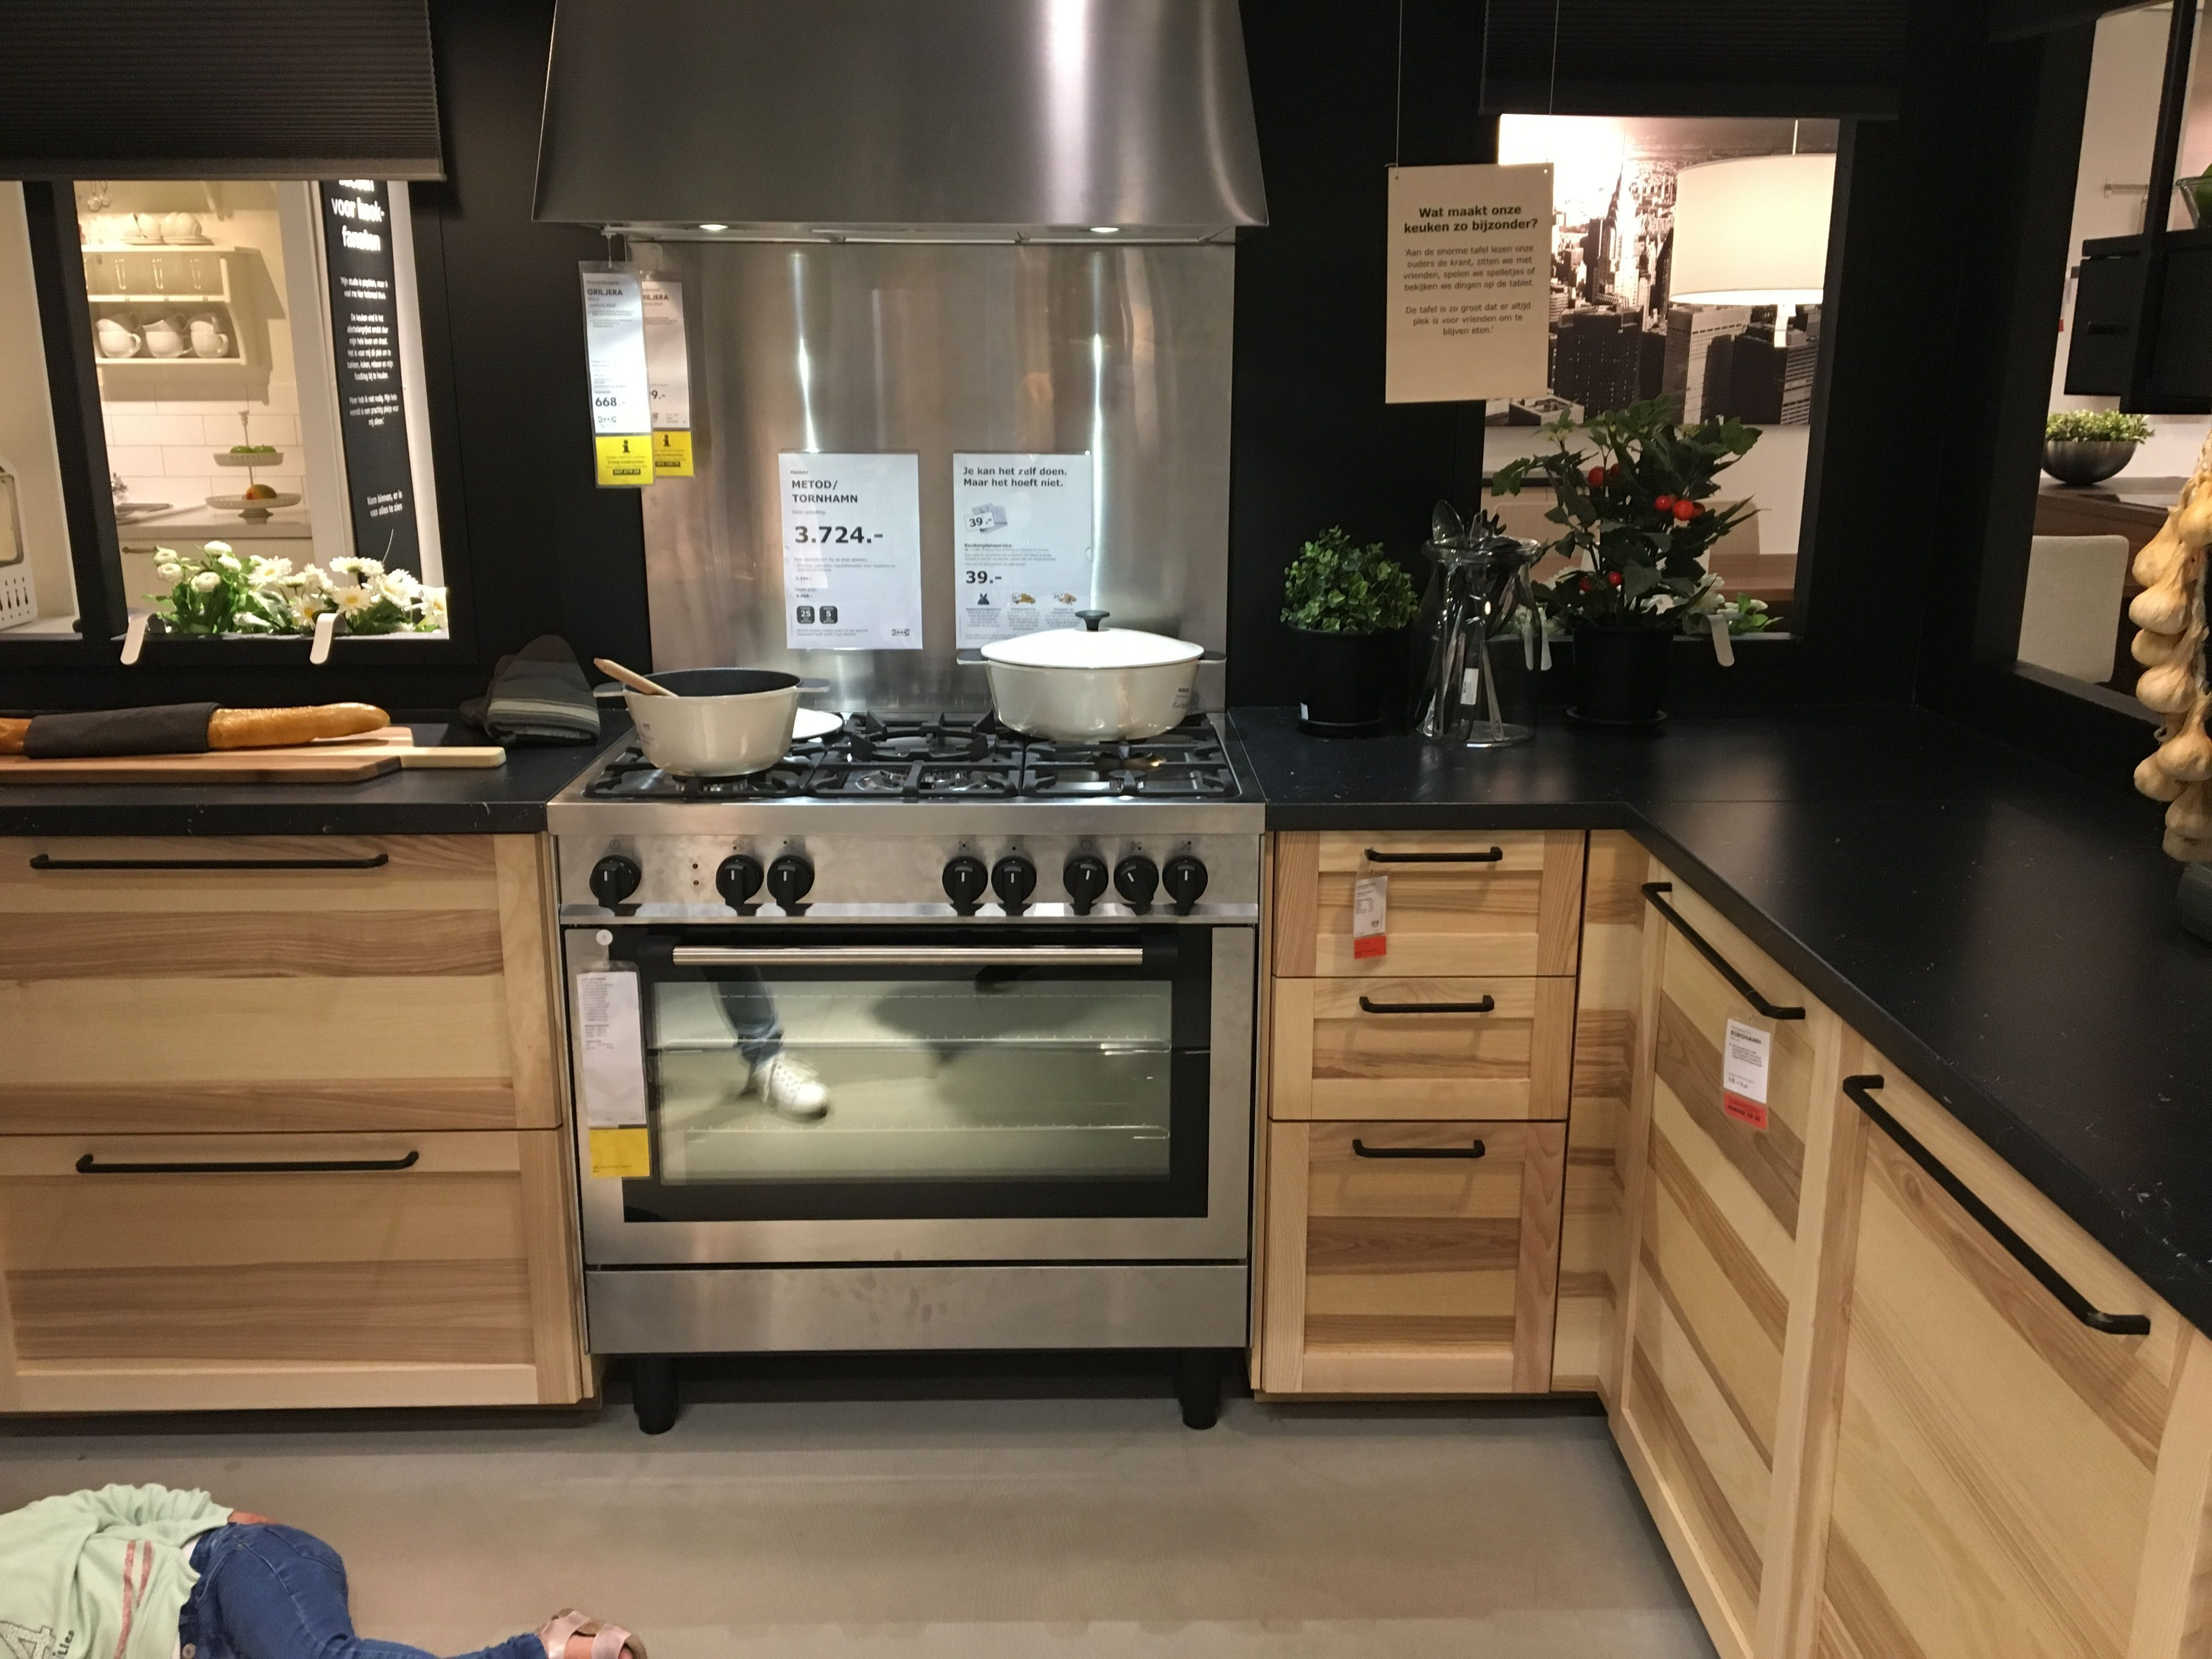 Image Result For Ash Ikea Kitchen Ash Ikea Image Kitchen Result Ikea Kitchen Kitchen Design Rustic Kitchen